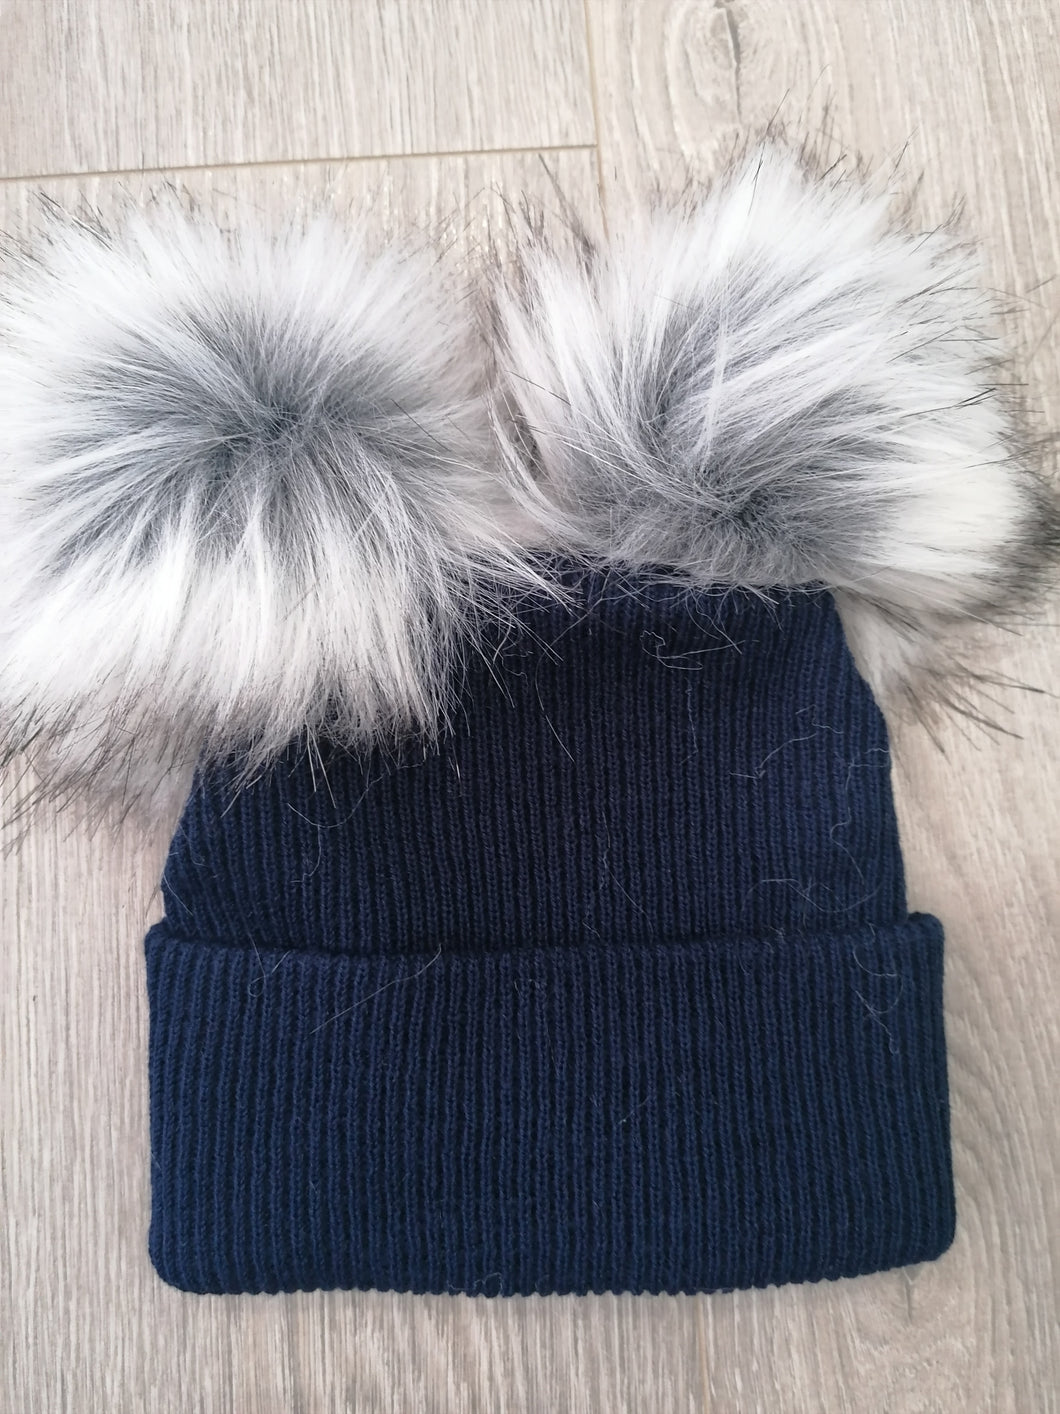 Navy Two Pom Hat.